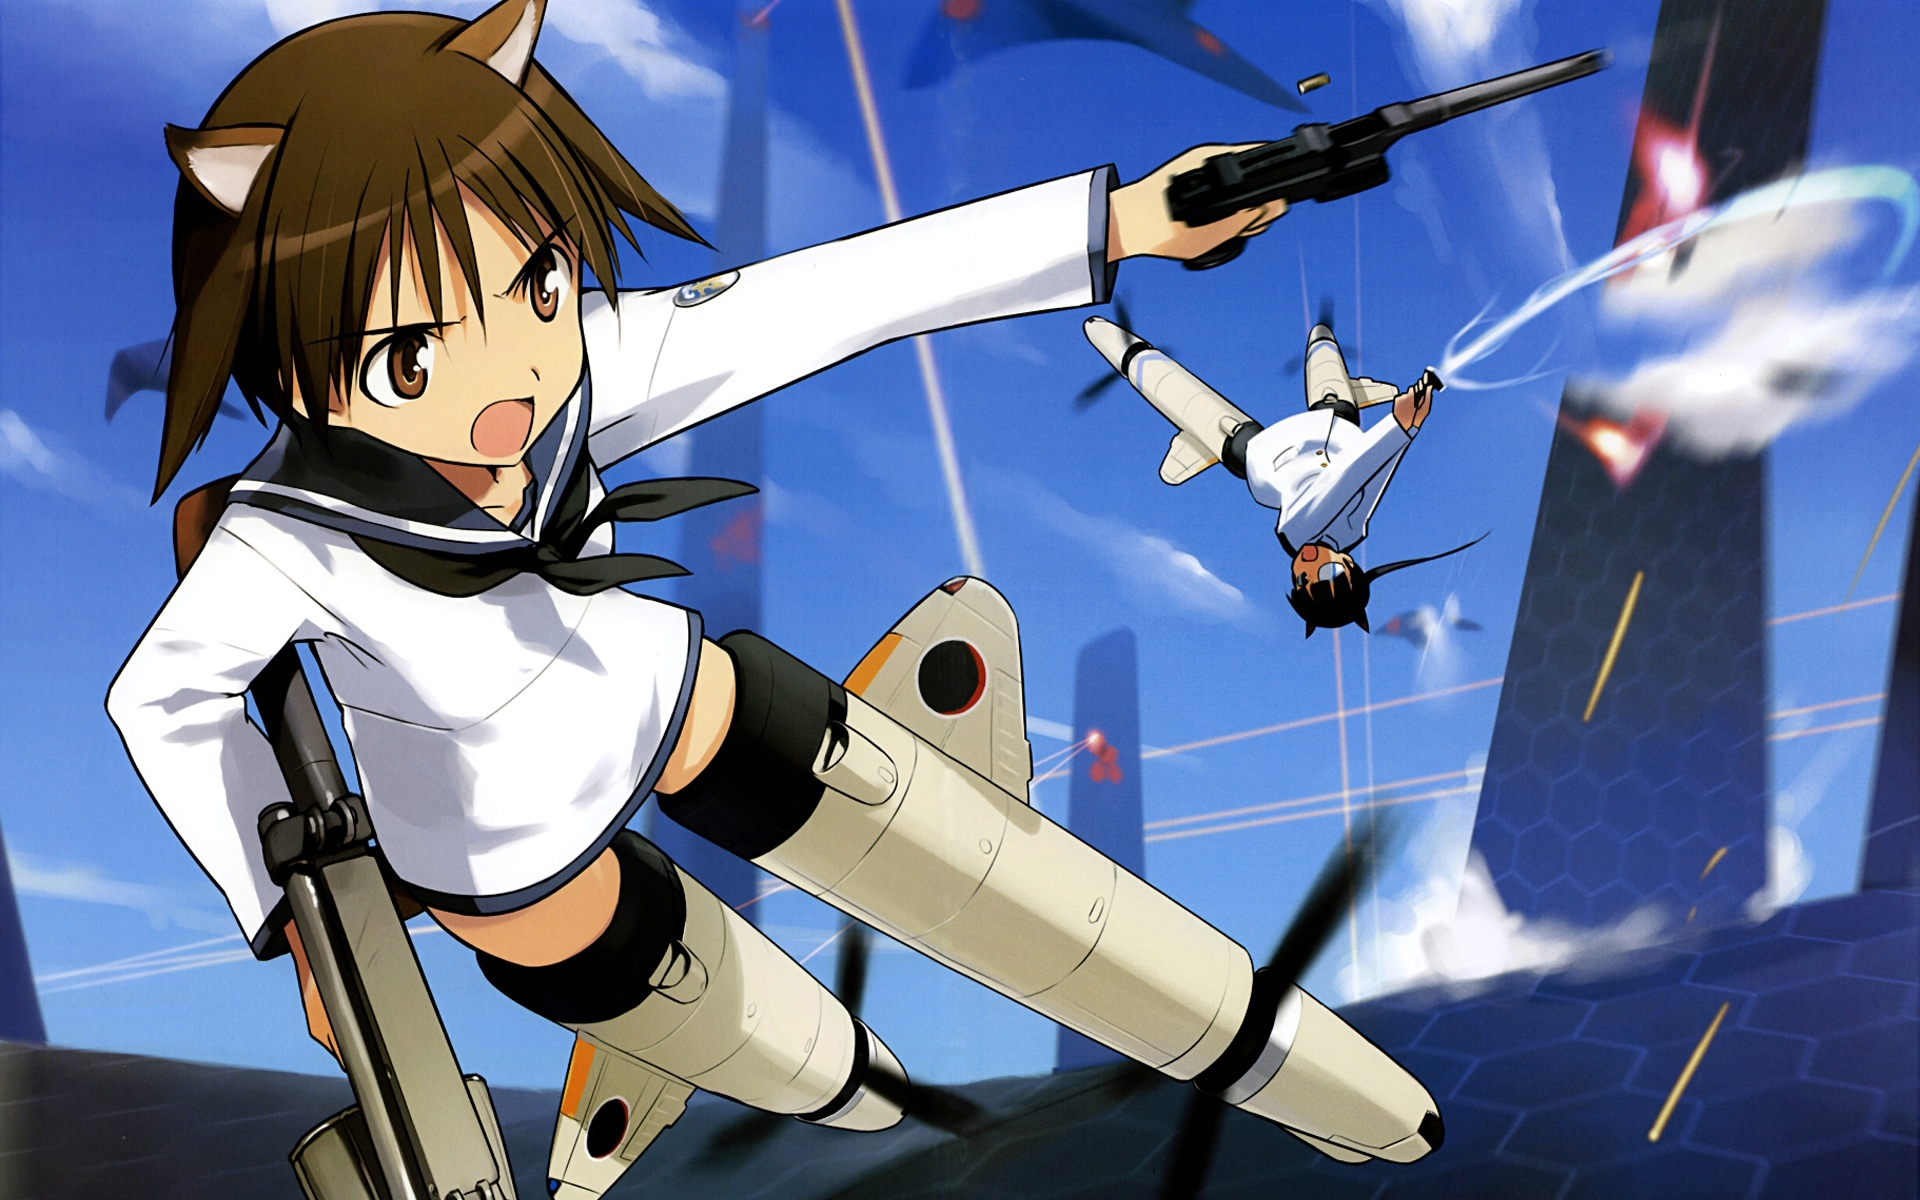 Tank Girl Wallpaper Android Strike Witches The Movie Full Hd Wallpaper And Background